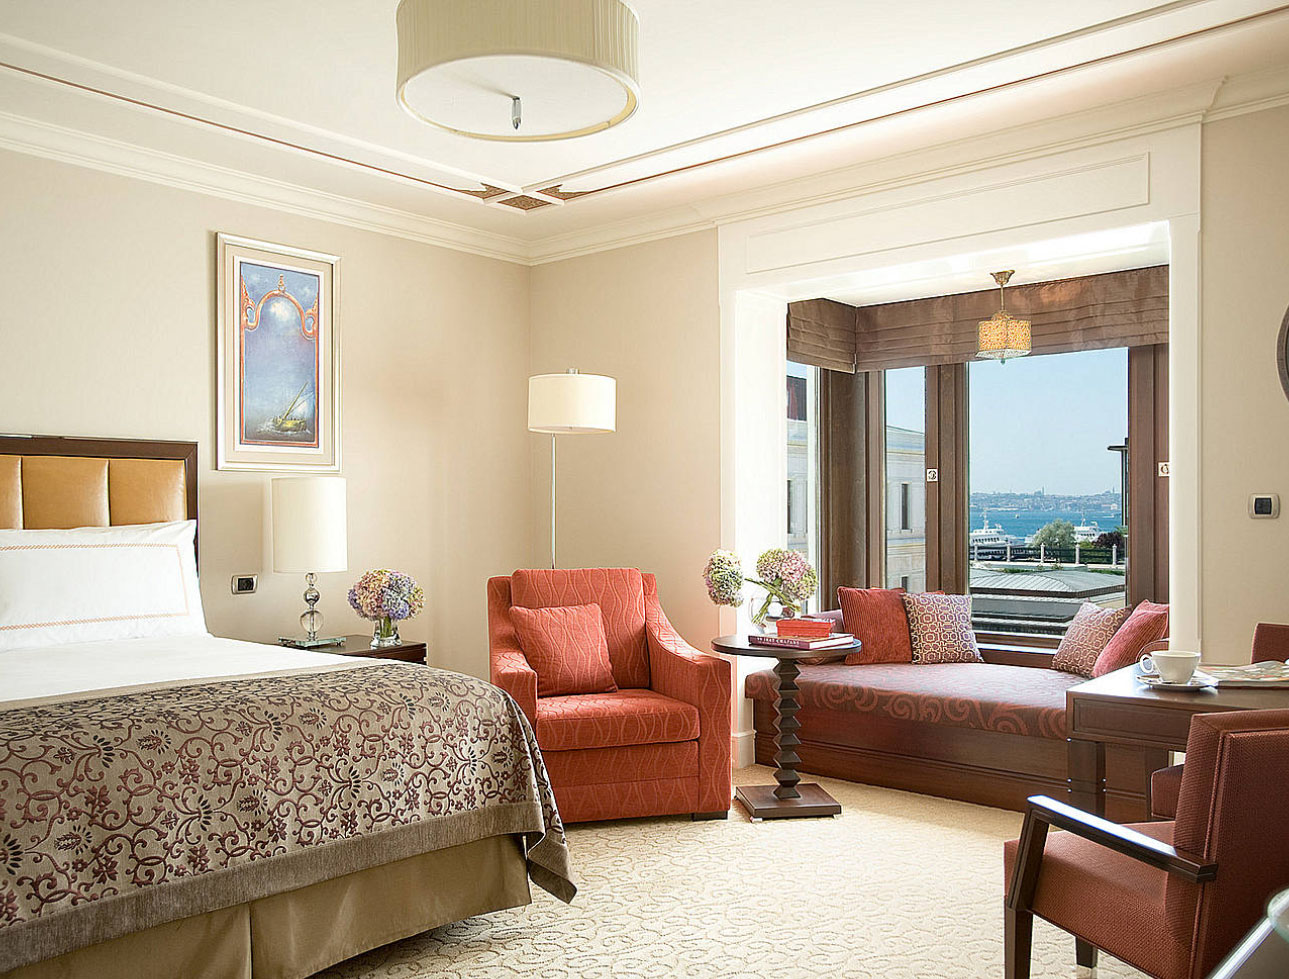 Four seasons hotel istanbul at the bosphorus idesignarch for Decor hotel istanbul